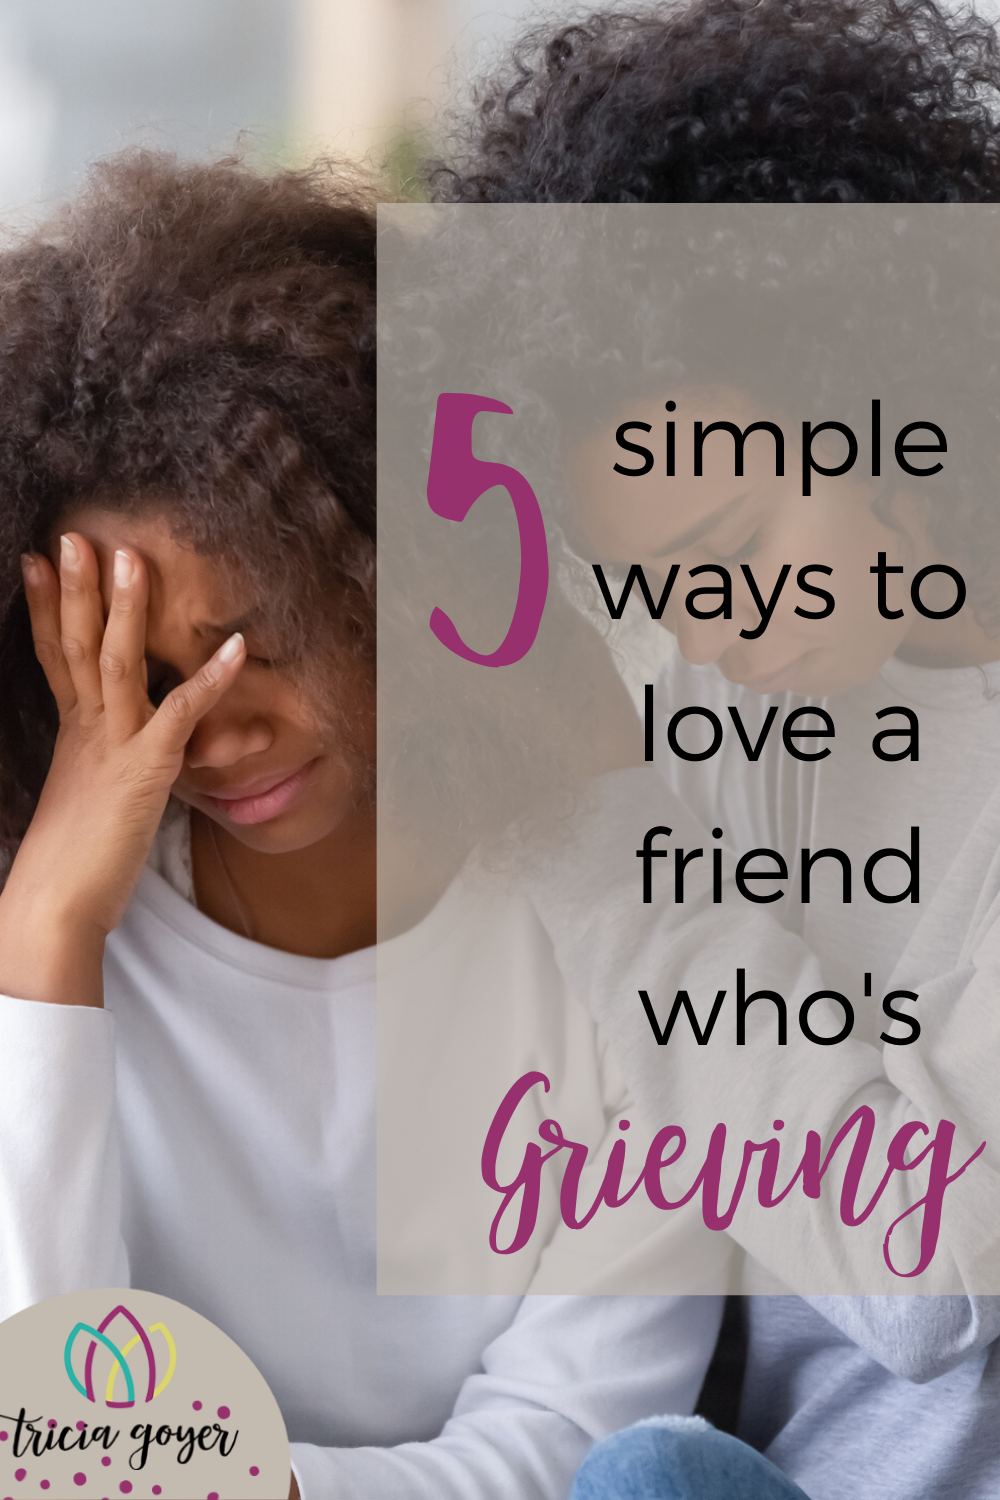 "When our friends or loved ones are hurting, especially grieving, it's easy to think there is nothing we can do to help. Or sometimes we convince ourselves that they want to be left alone and when some time has passed, our friendship will return to ""normal."" Here are 5 simple ways to love a friend who's grieving:"